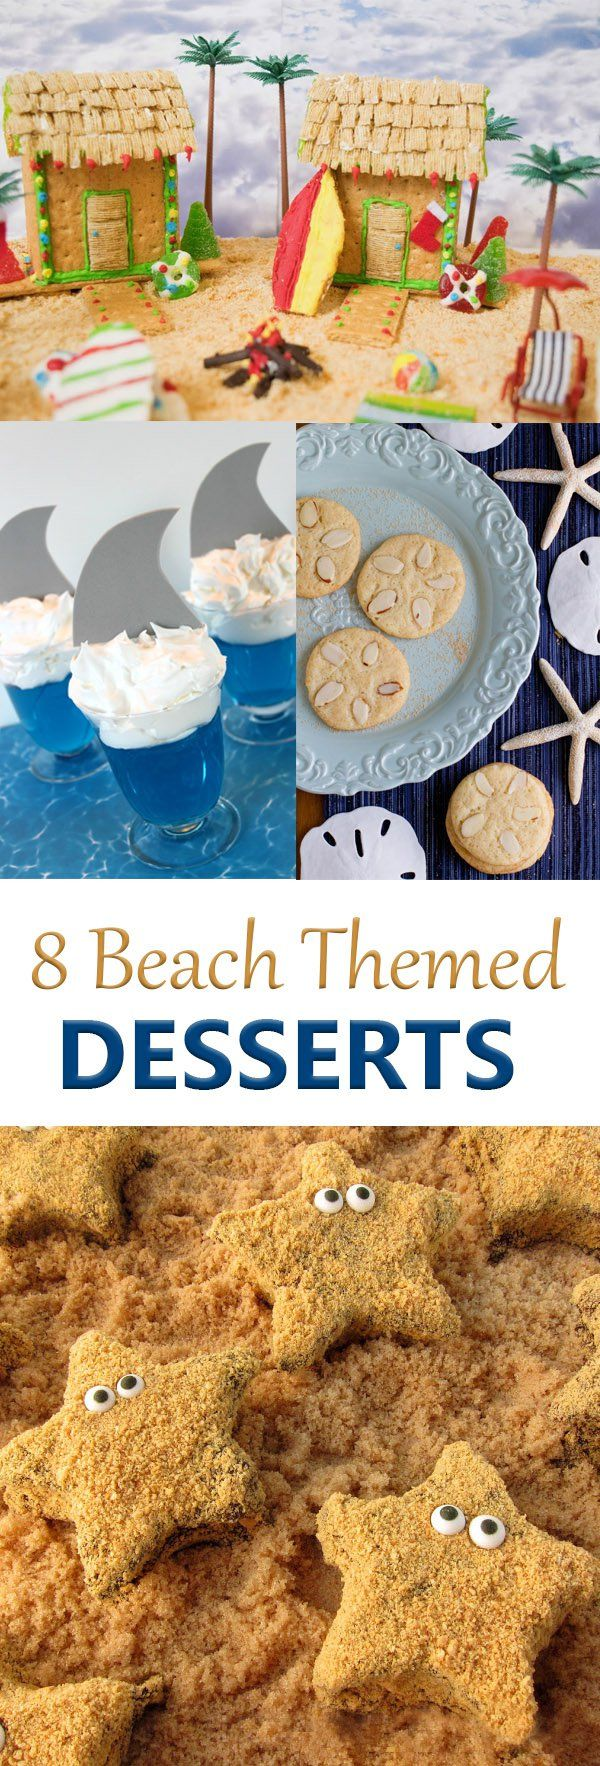 Beach Themed Desserts for Summer Parties